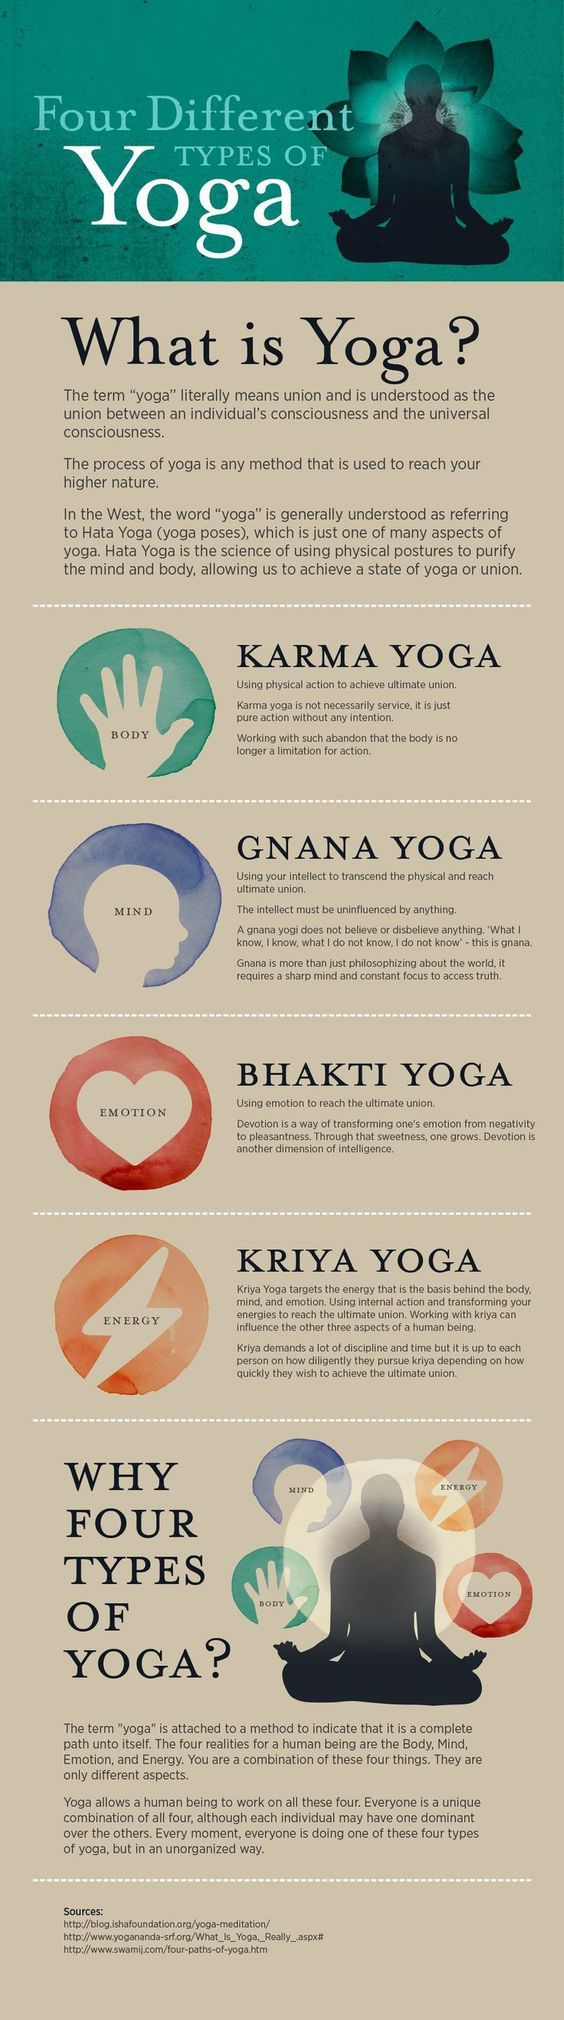 I found this interesting... 4 Different Yoga.